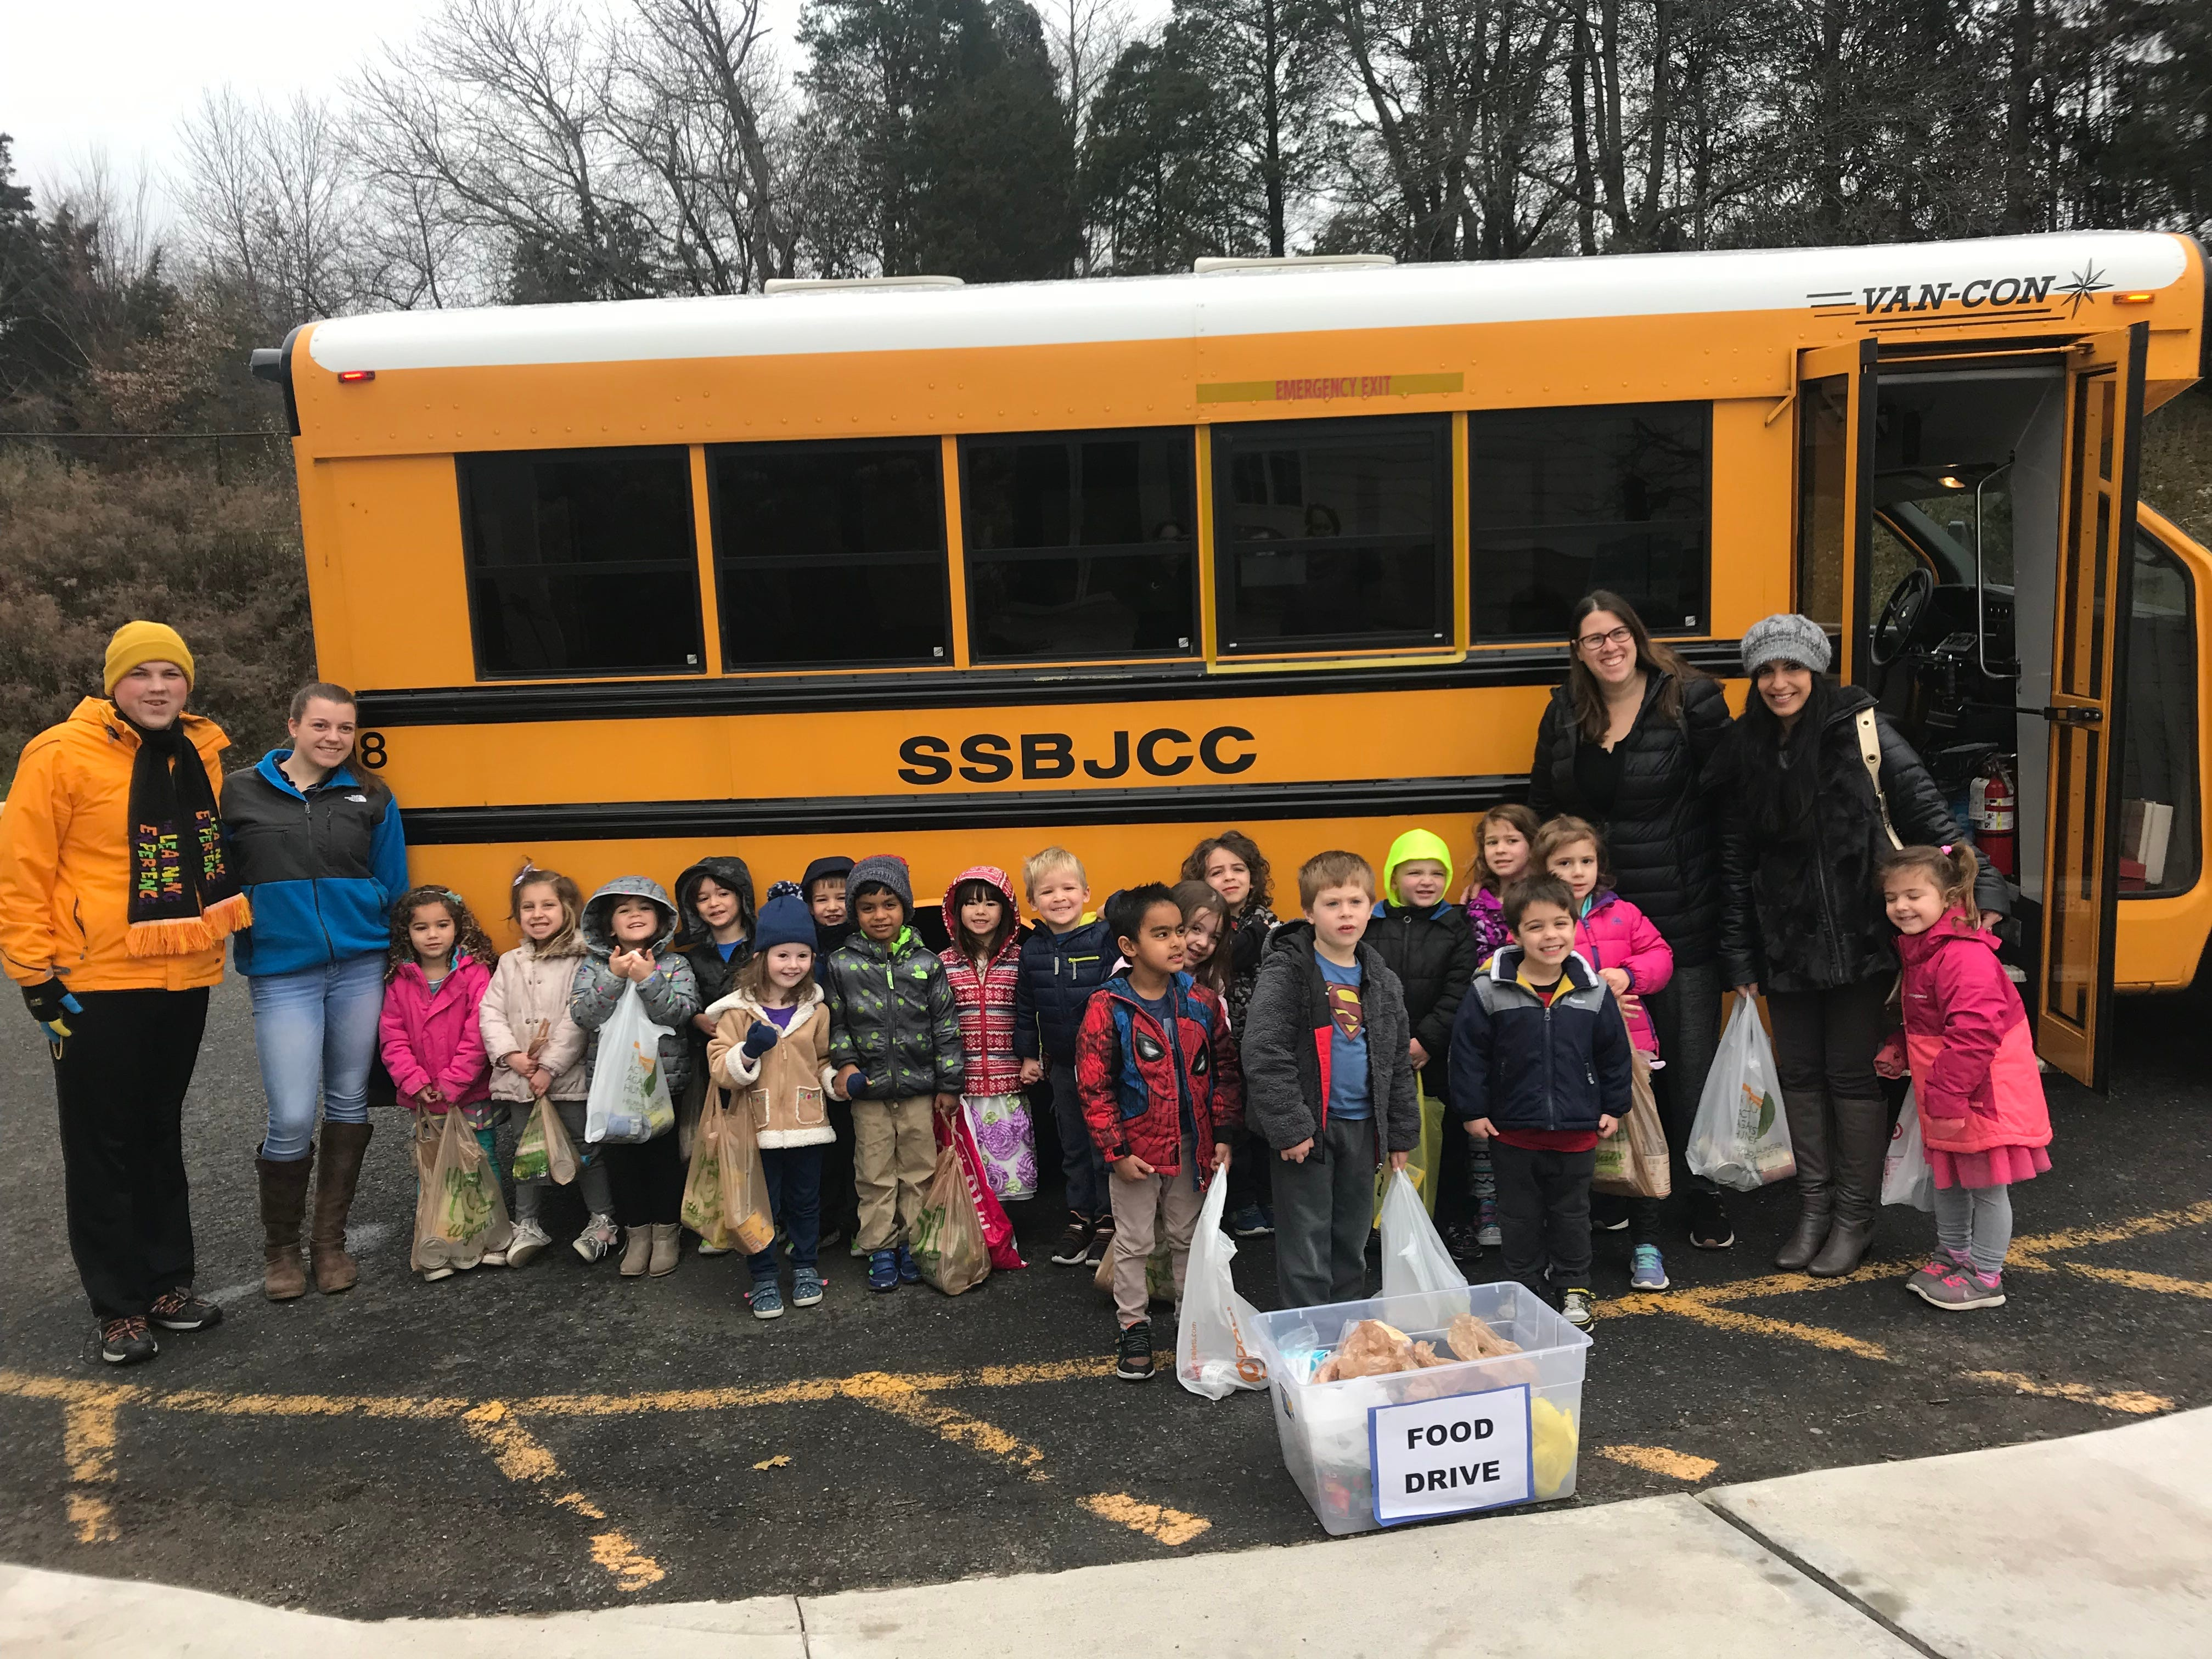 Pictured with bags of collected food are the children in the JCC Blaustein Early Childhood Center four-year-old class along with [left to right]: JCares Intern William Mahon, teacher Sam Ballow, teacher Marisa Berman and parent Sari Greaves.